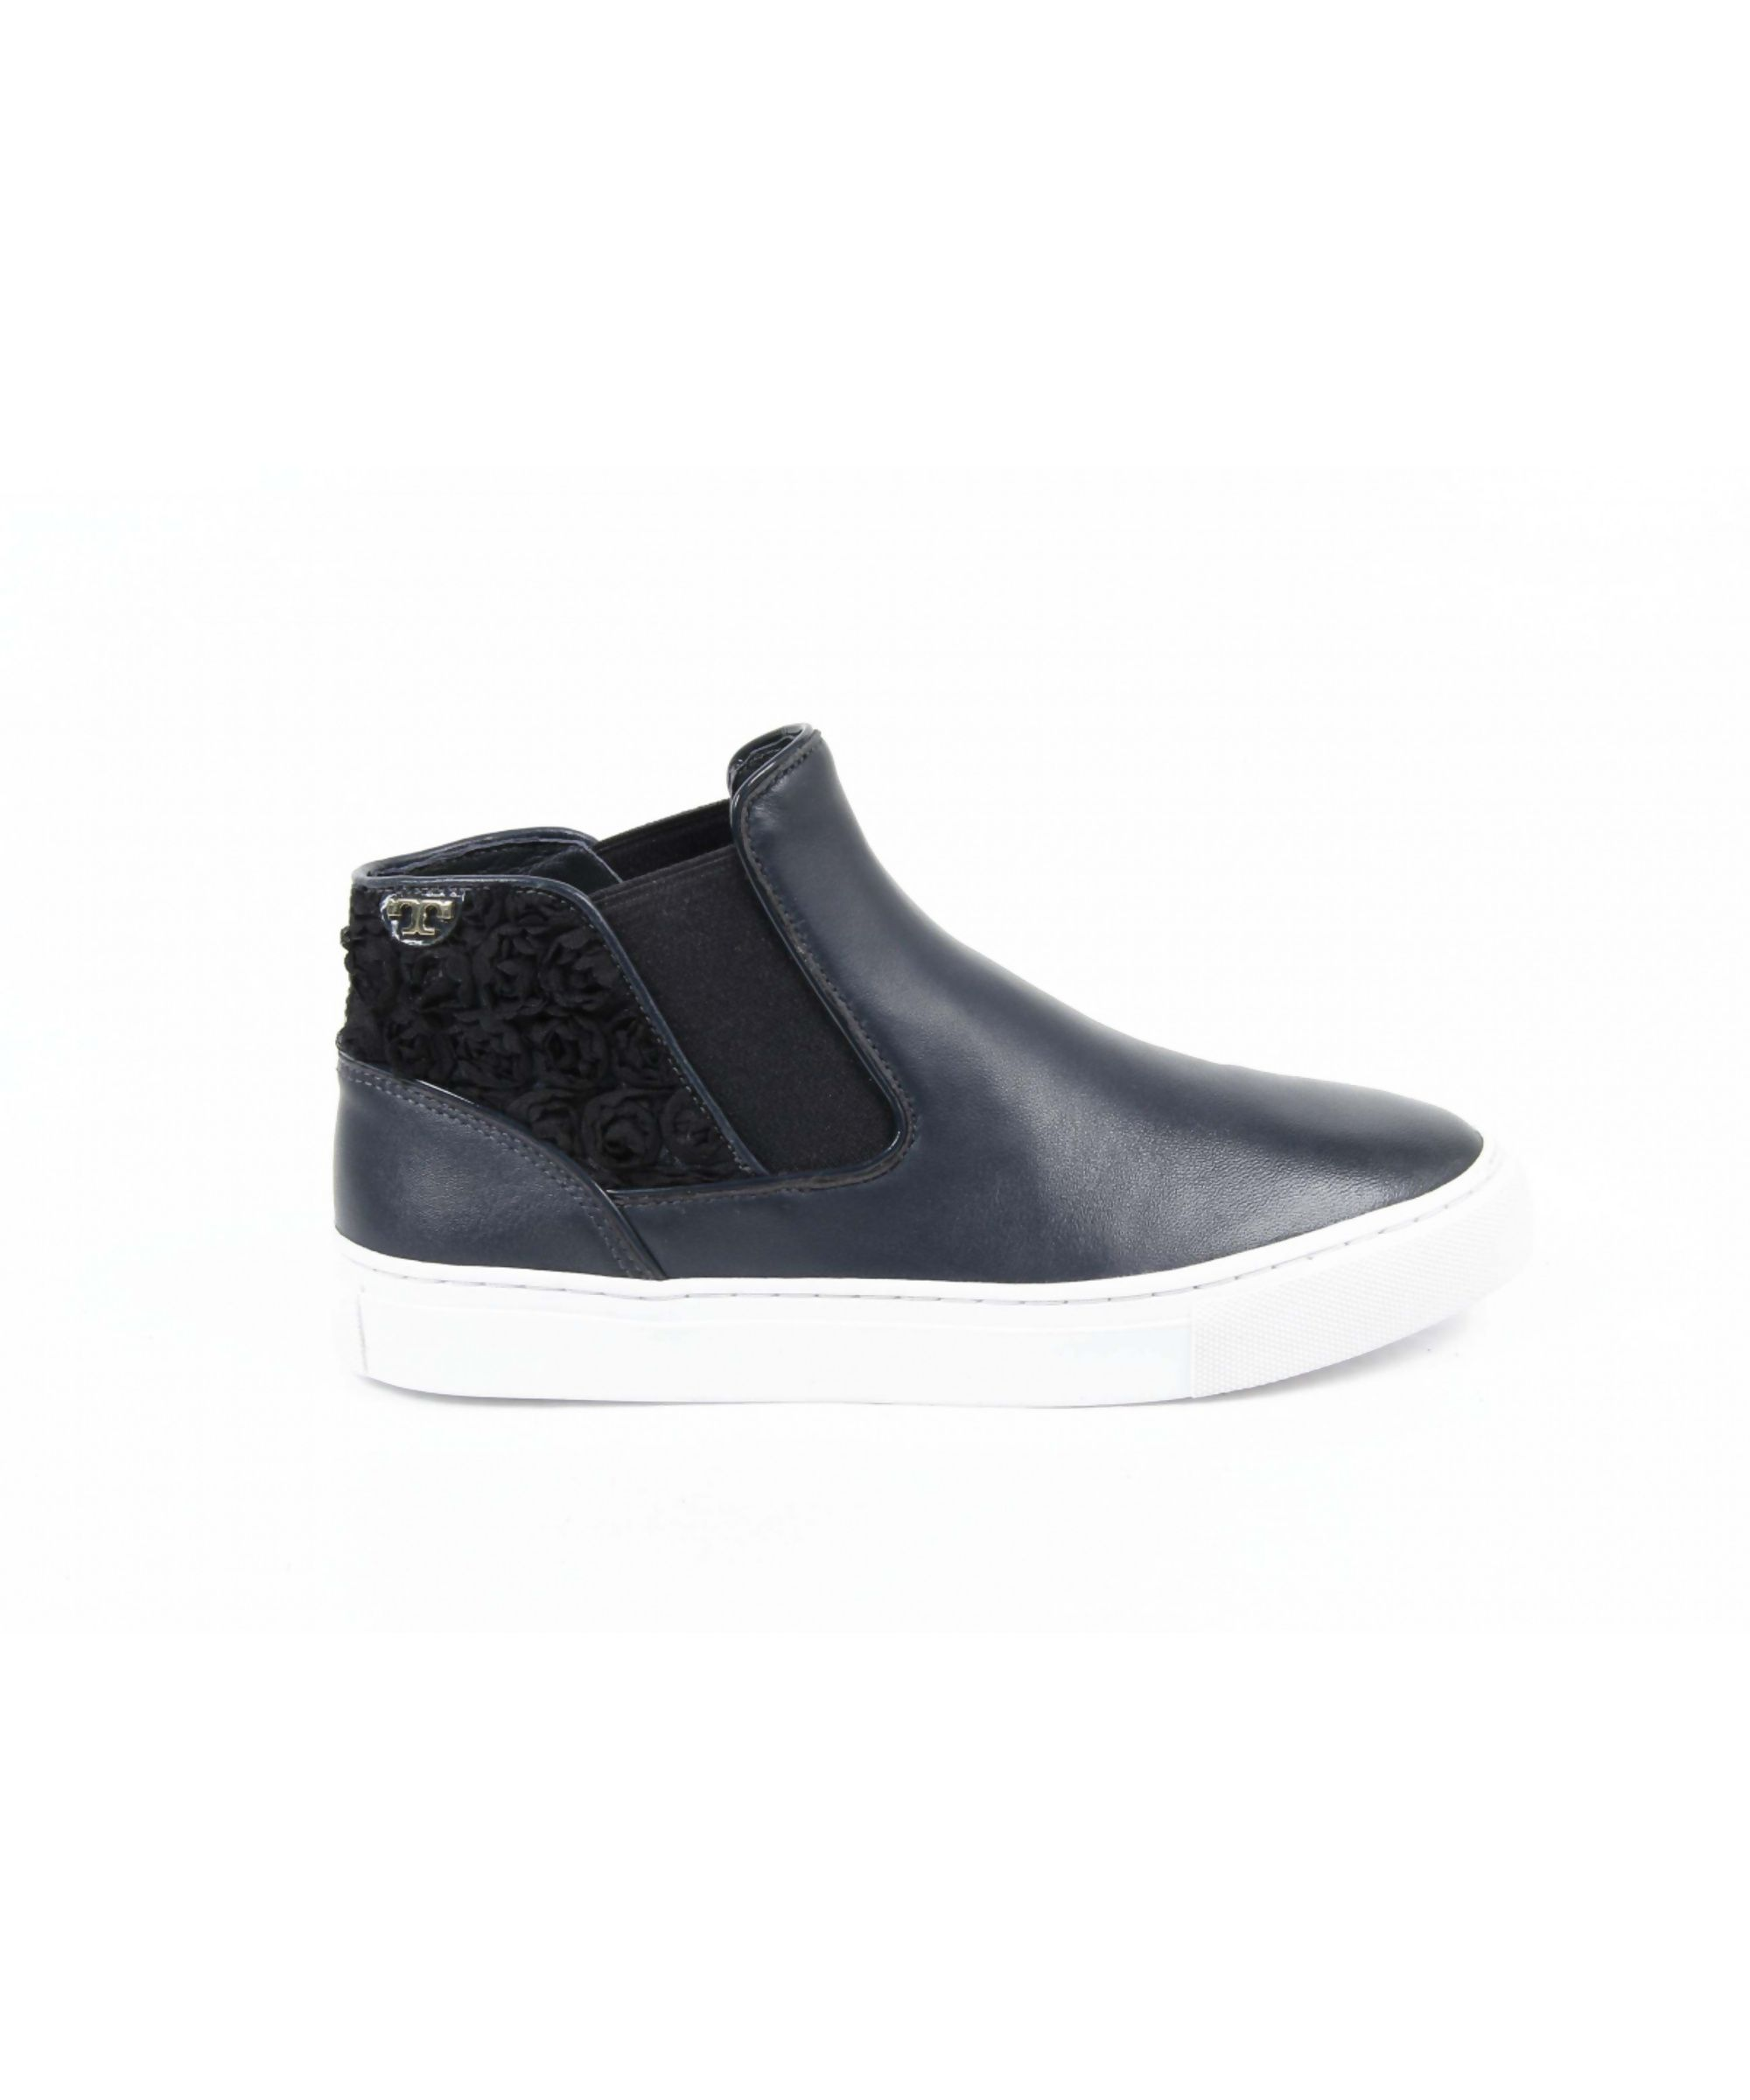 Slip on Sneakers for Women On Sale in Outlet, Black, Calf-skin Leather, 2017, 7.5 Celine